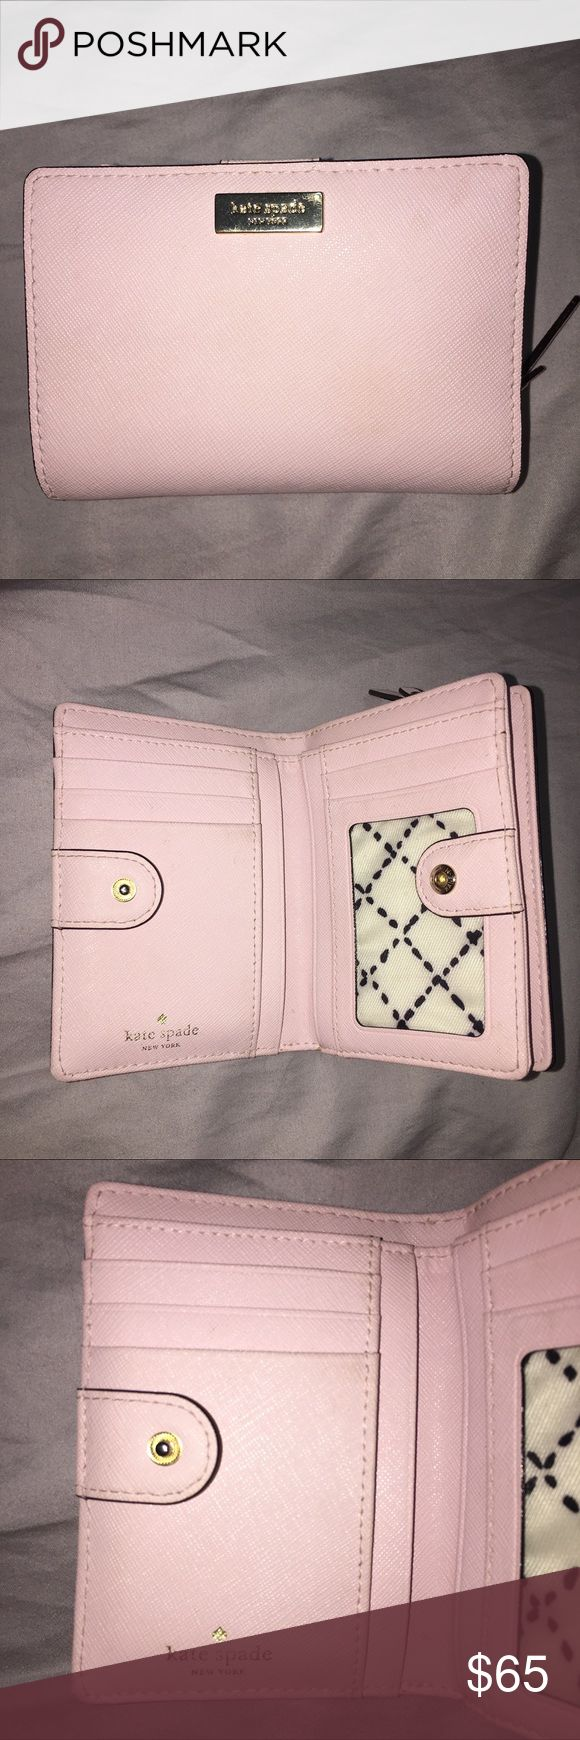 """Kate spade wallet Super cute light pink wallet barely used. Does have a couple of small and very unnoticeable marks and gold hard ware is scratched. Has lots of compartments and ID slot. 5"""" across 3.5"""" top to bottom about 1.5"""" wide kate spade Bags Wallets"""